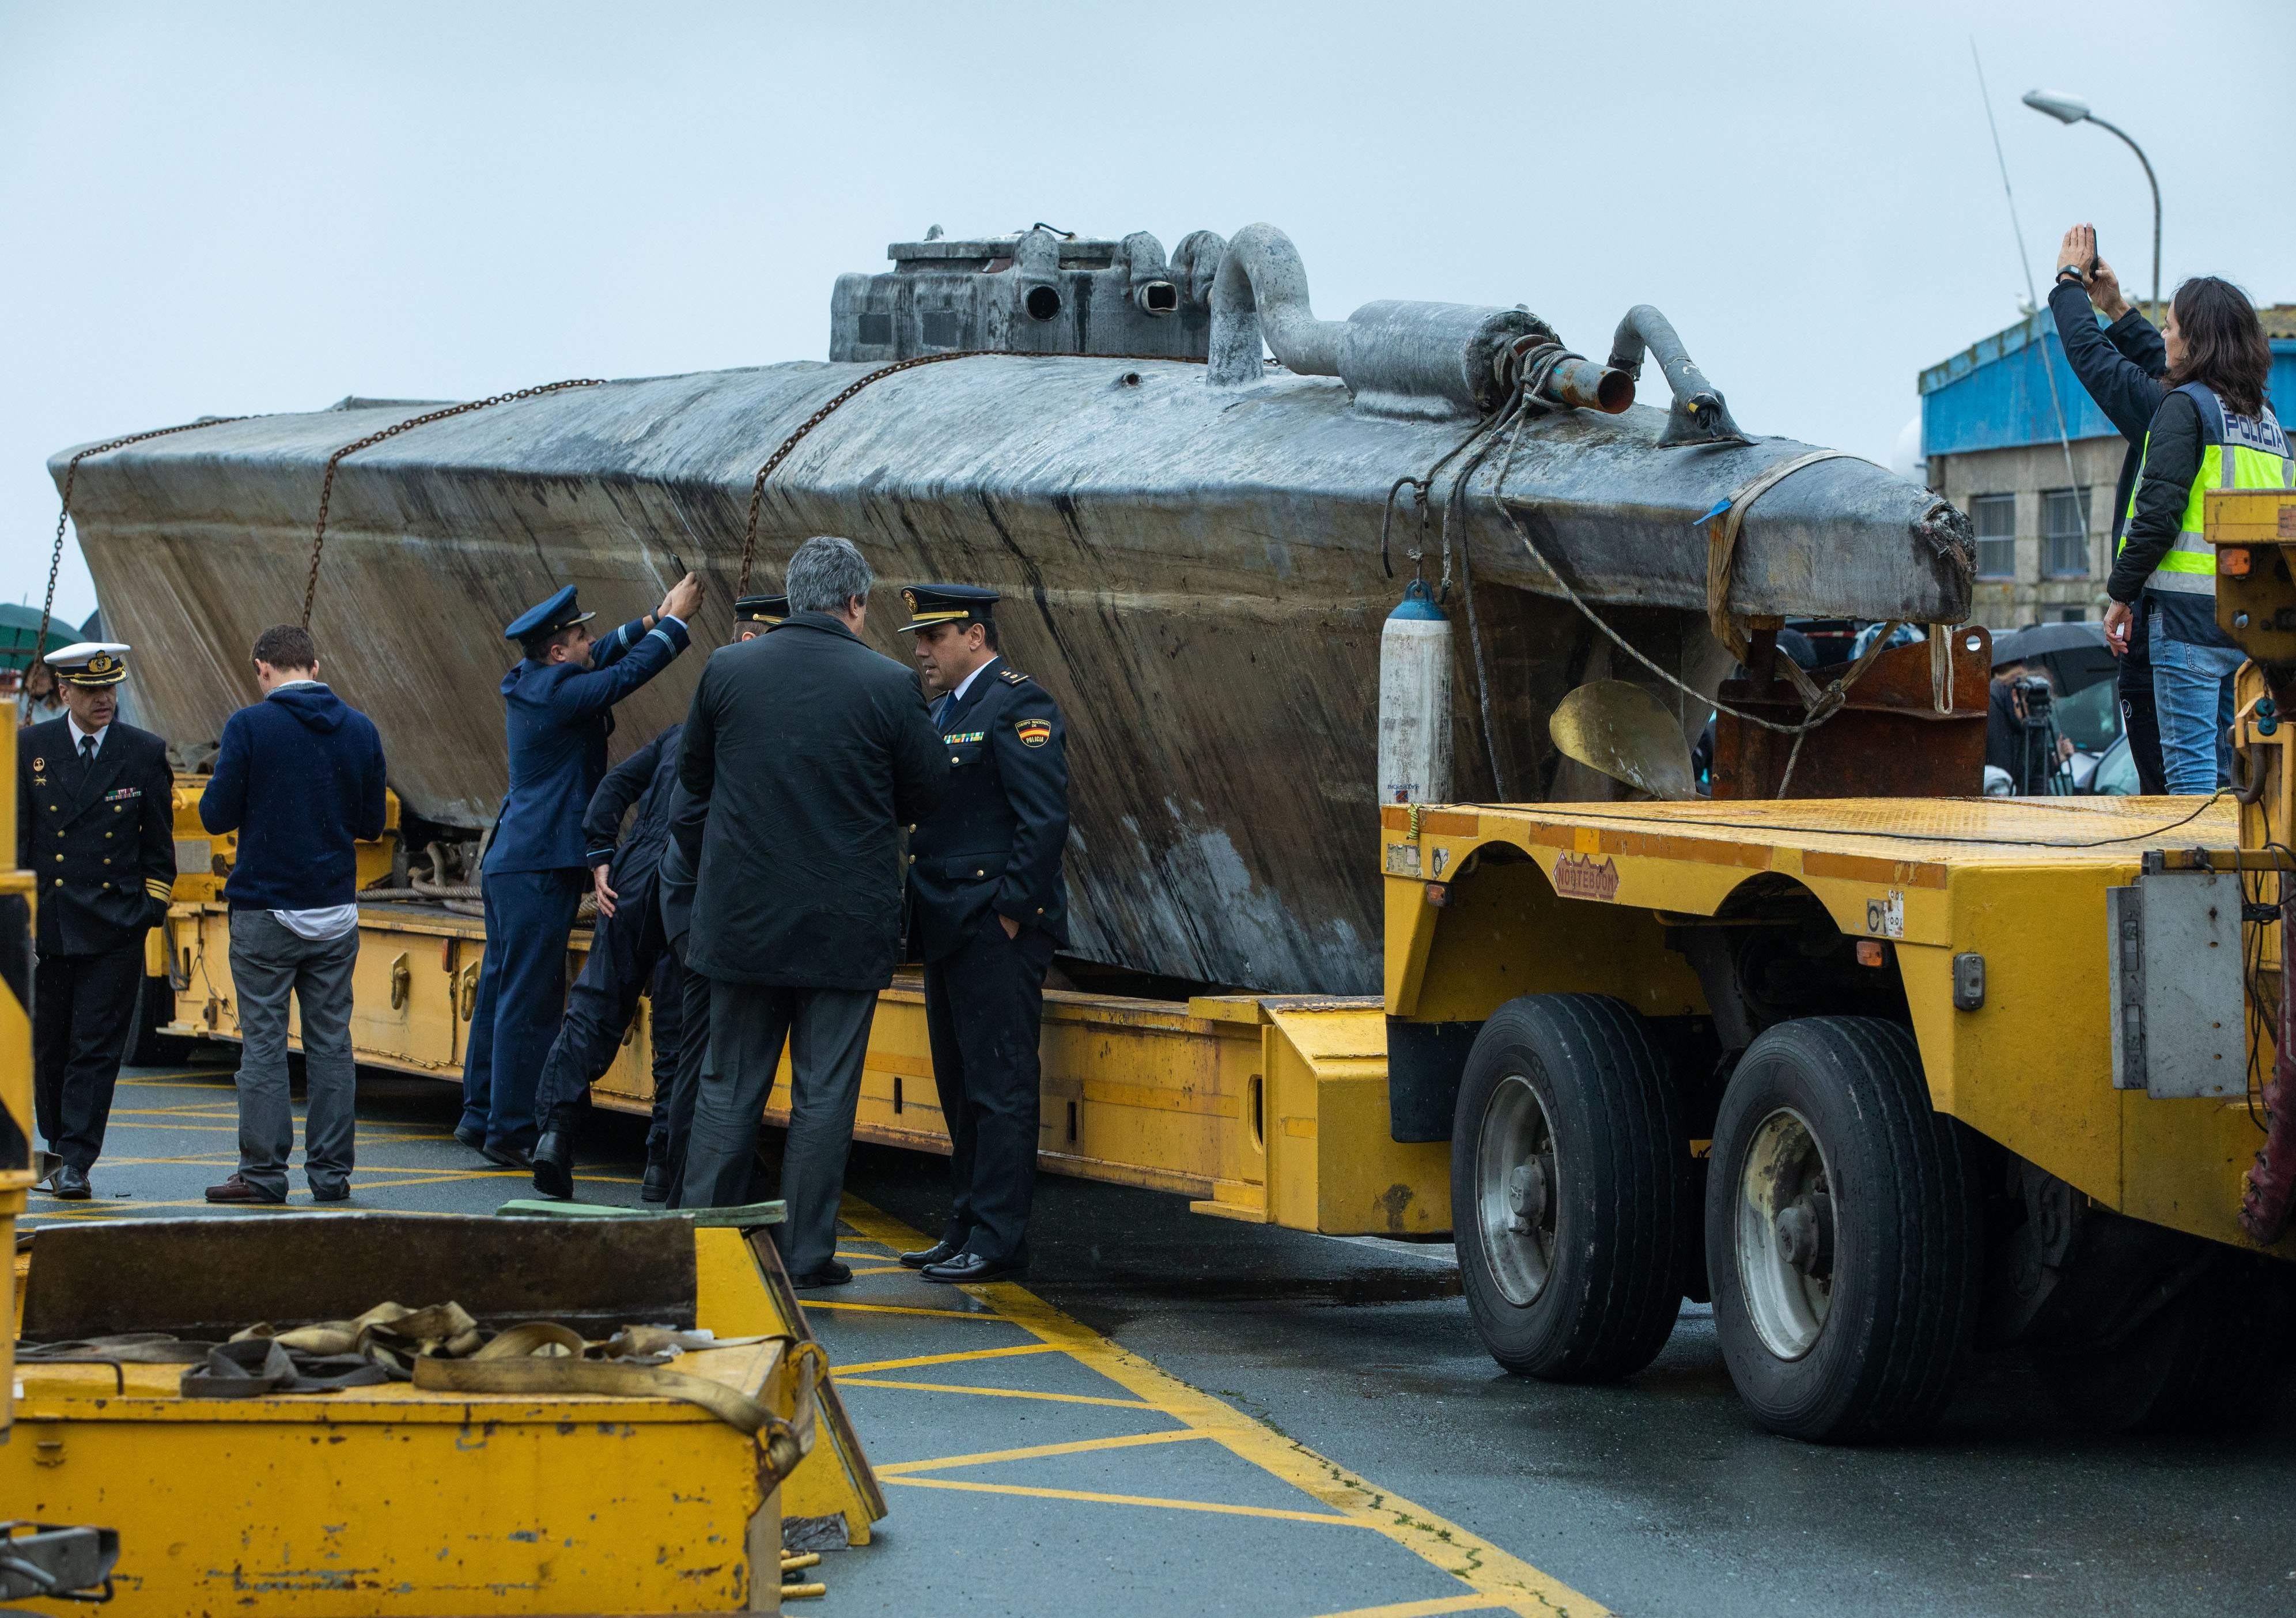 Cocaine seized from 'narco-submarine' in Spain was likely headed for UK